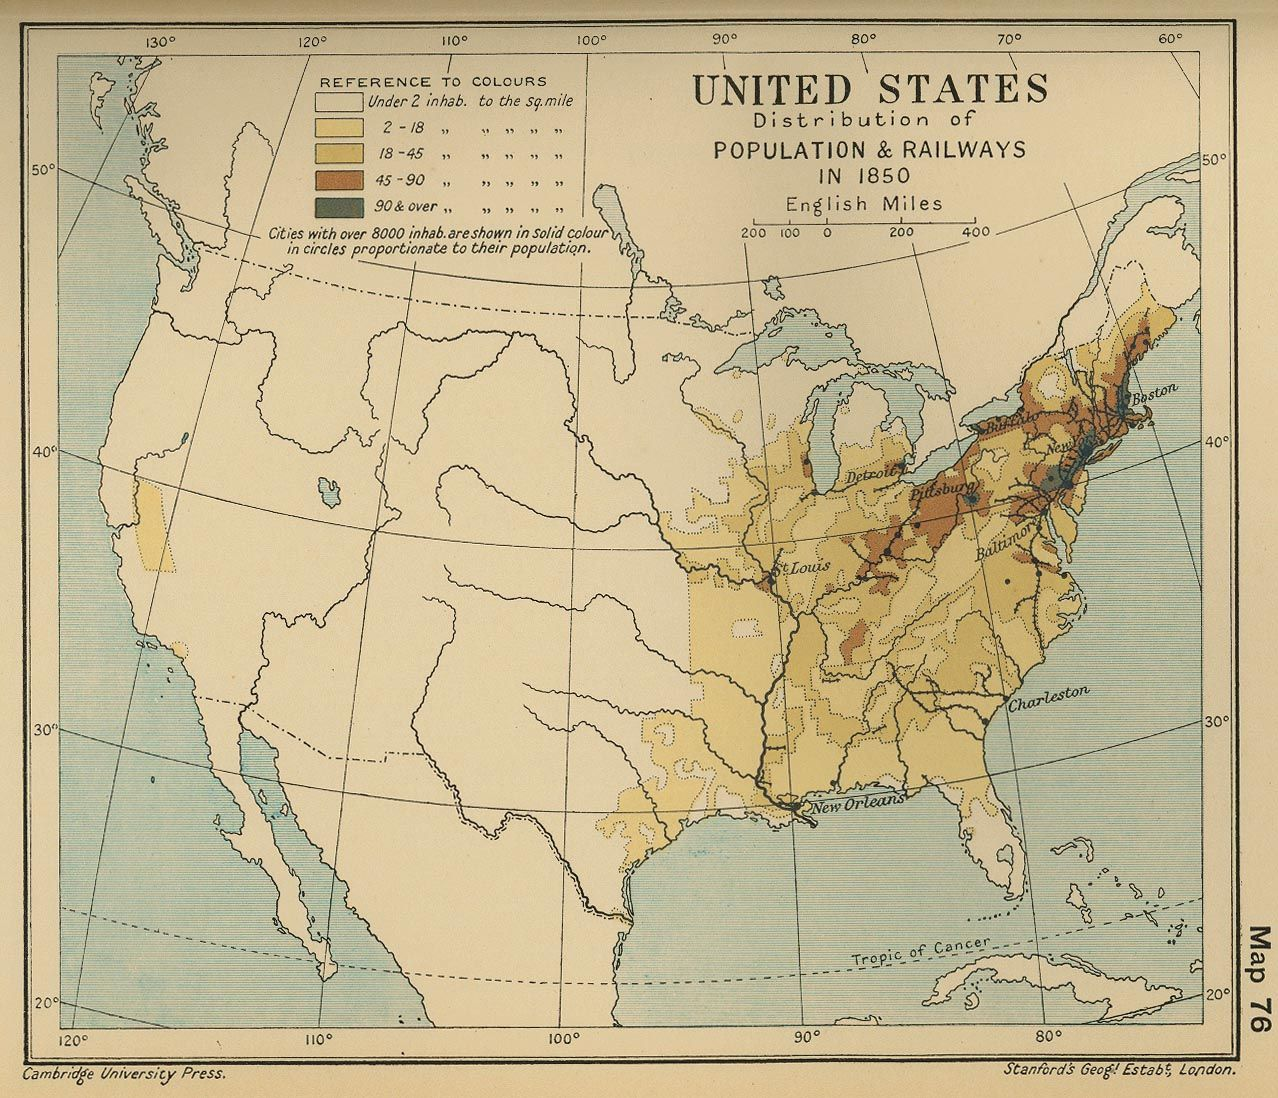 Map Of The United States Population Troublesome Times - Historic us maps